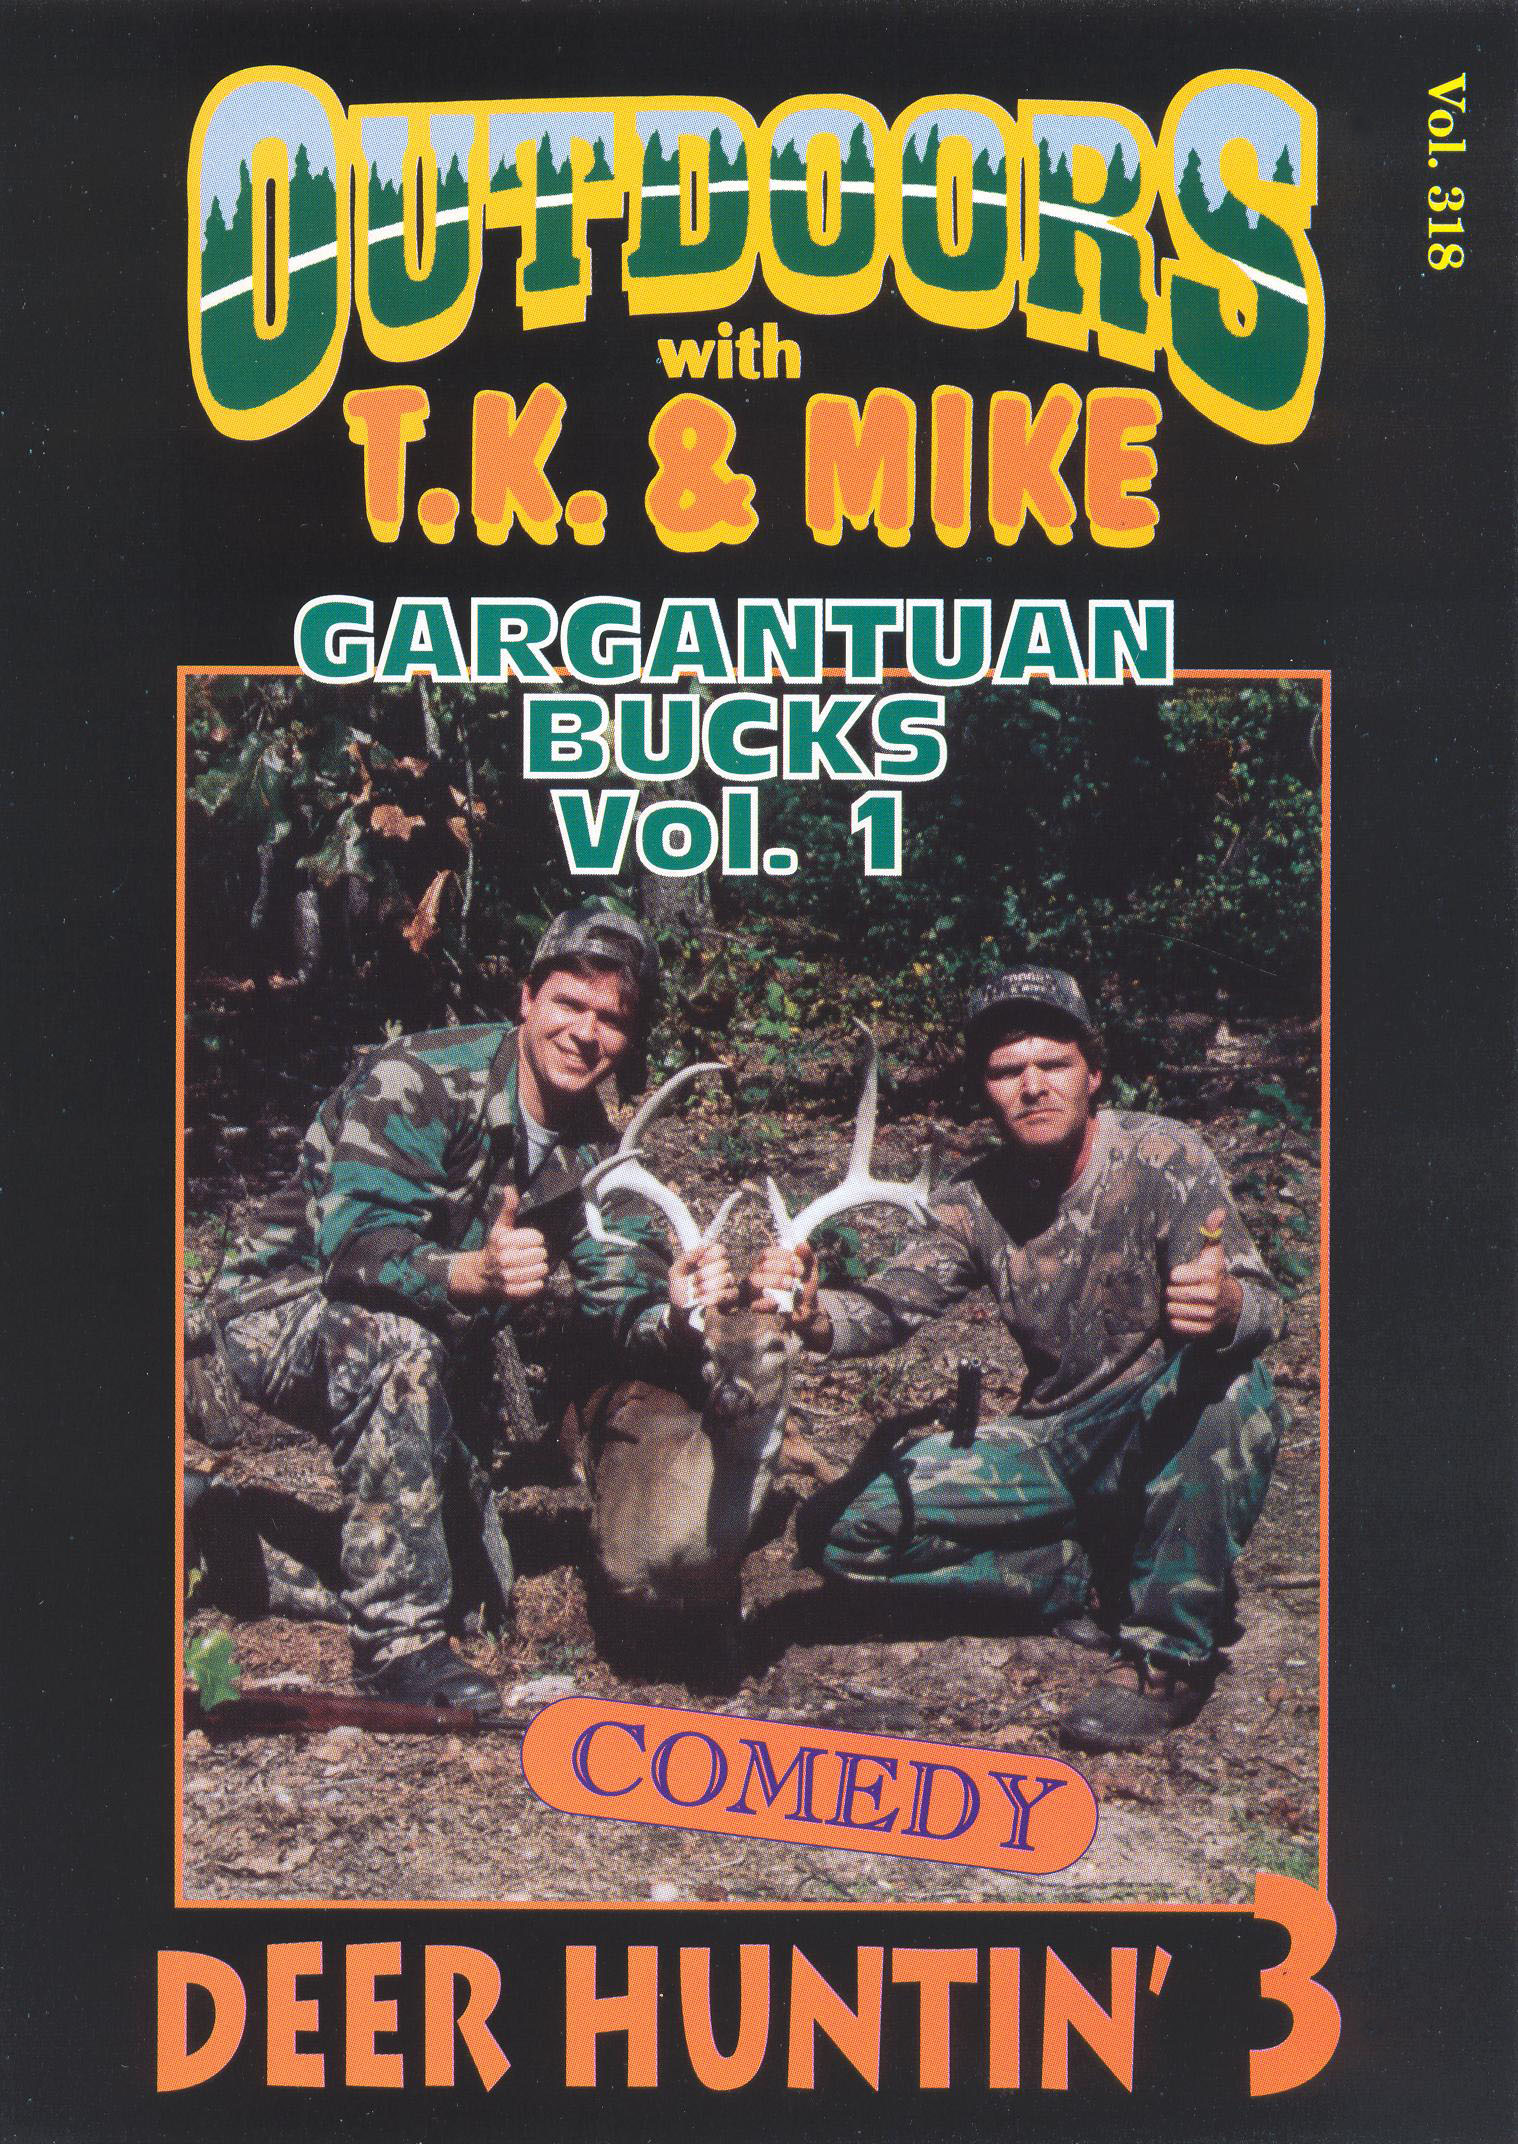 T.J. and Mike: Duck Hunting, Vol. 3